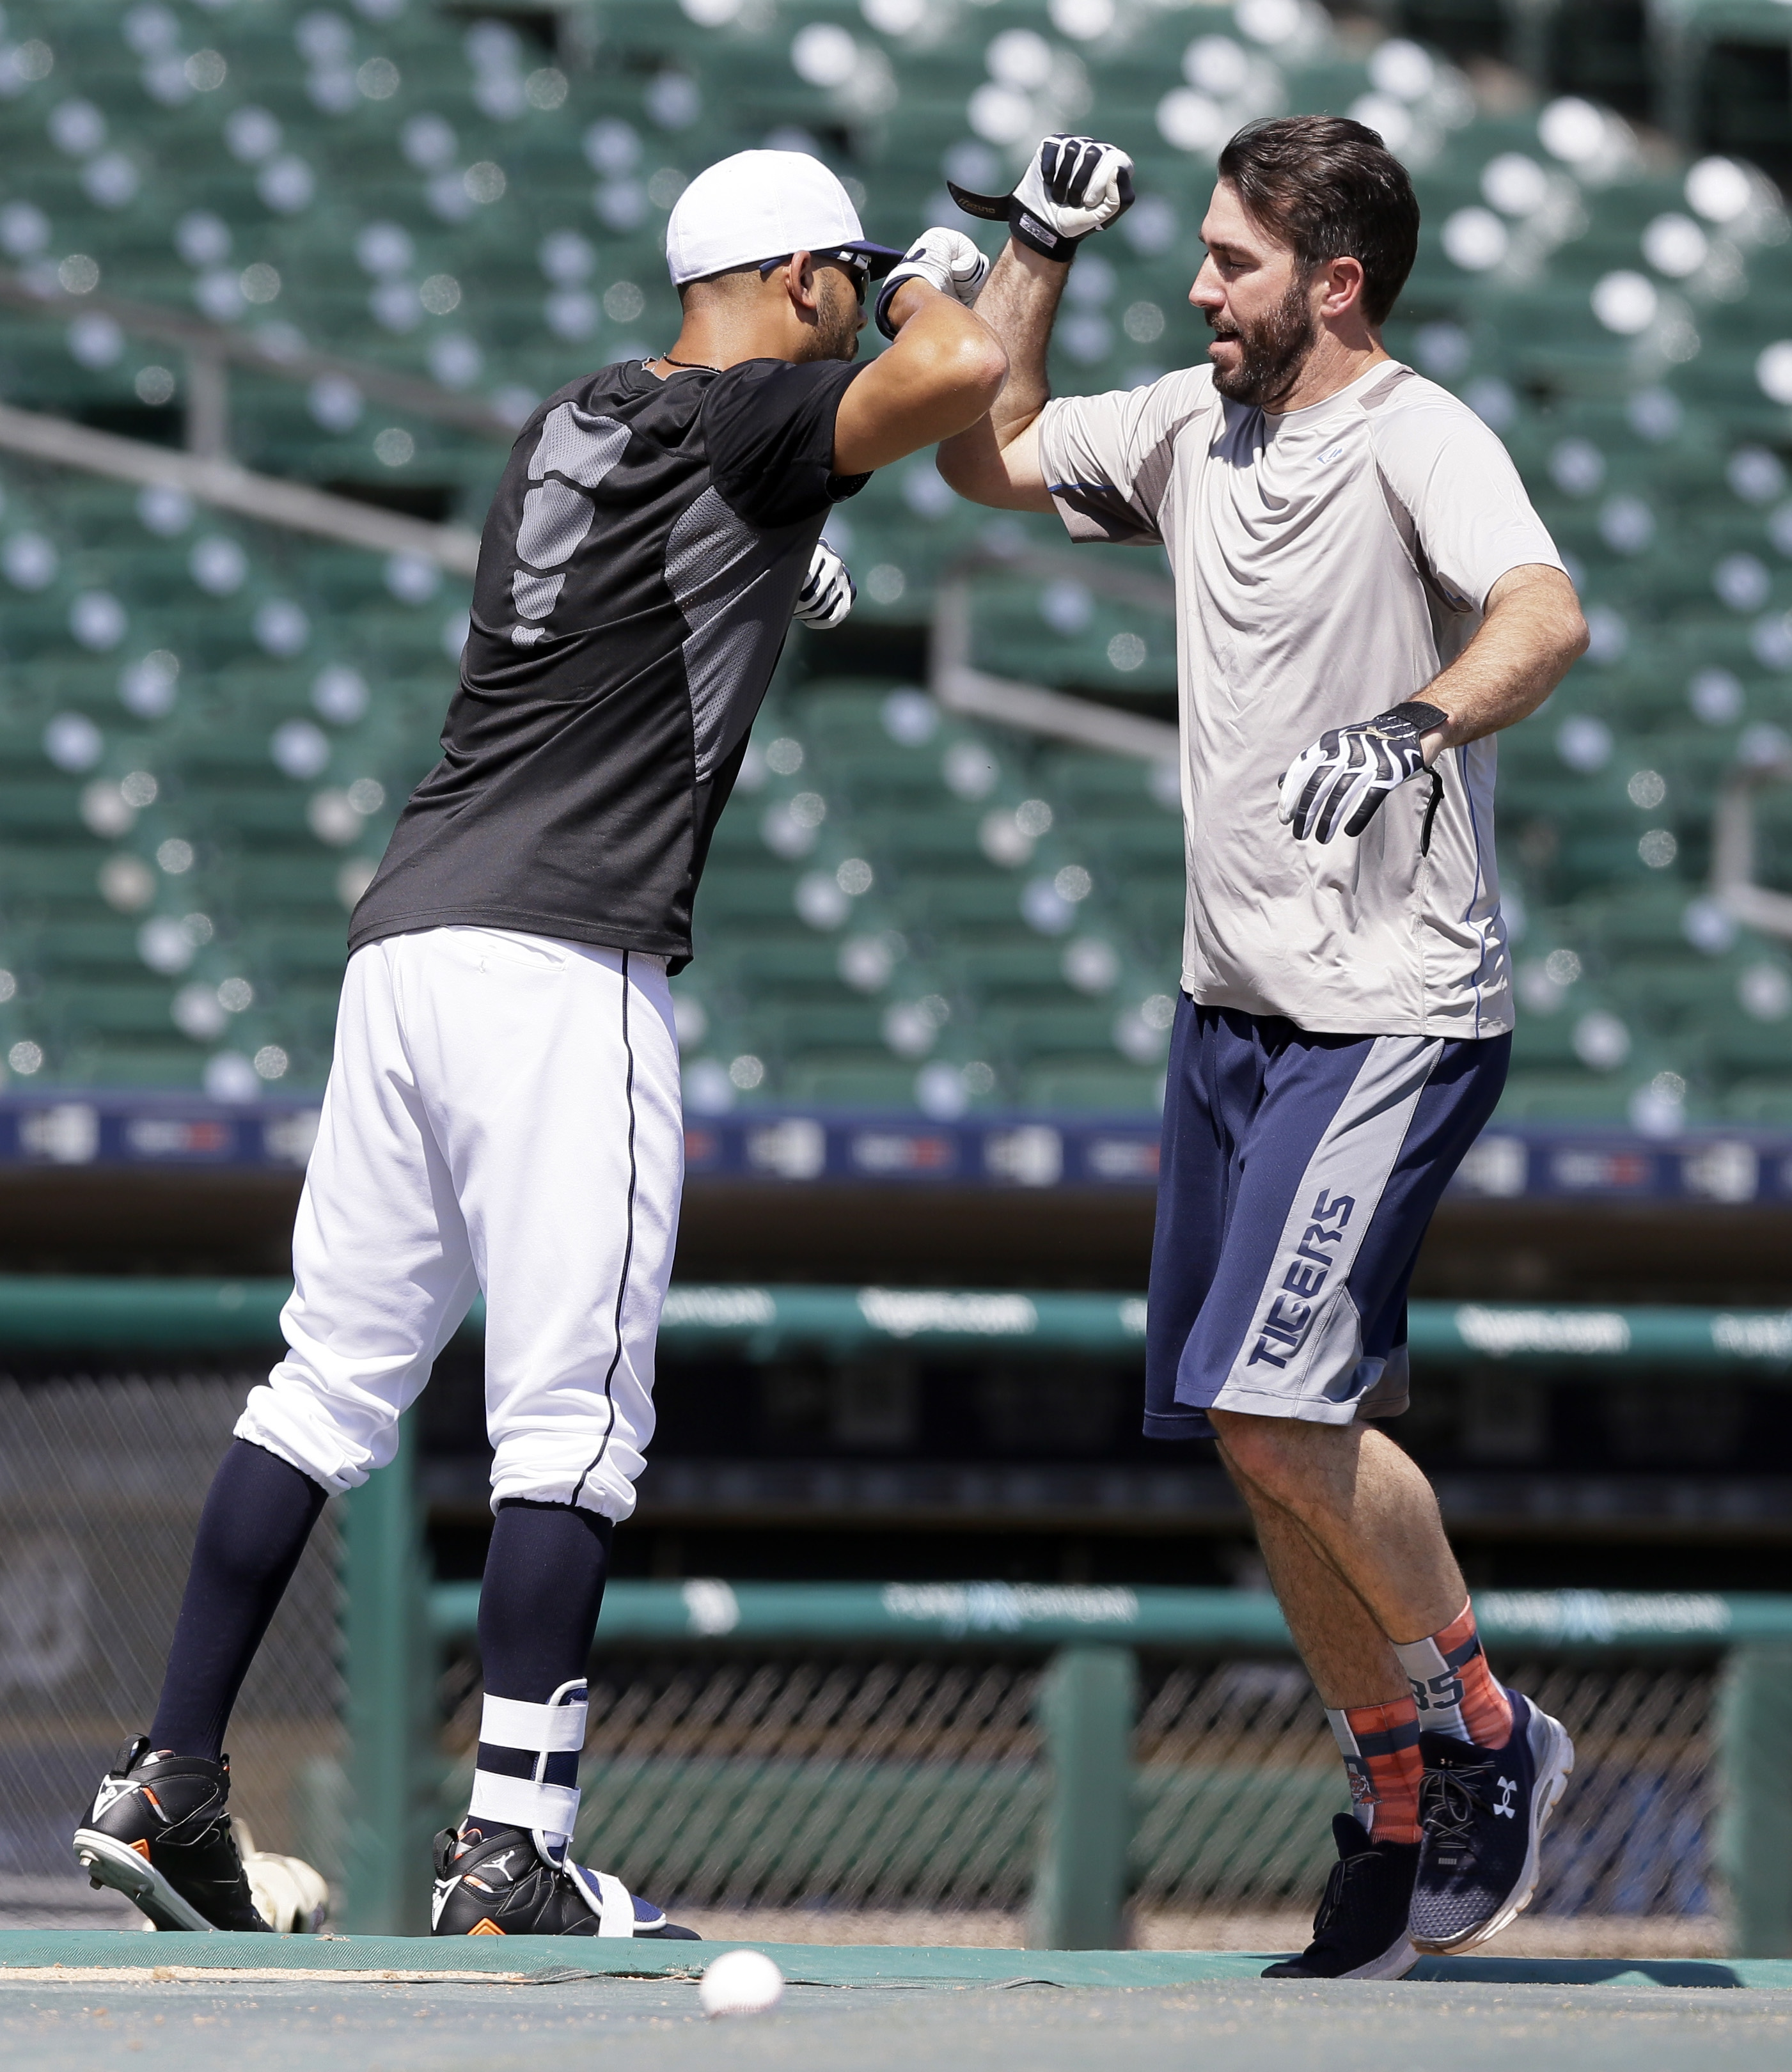 Detroit Tigers pitcher Justin Verlander, right, is greeted at home plate by pitcher David Price after hitting a home run during batting practice before a baseball game against the Chicago Cubs, Wednesday, June 10, 2015, in Detroit. (AP Photo/Carlos Osorio